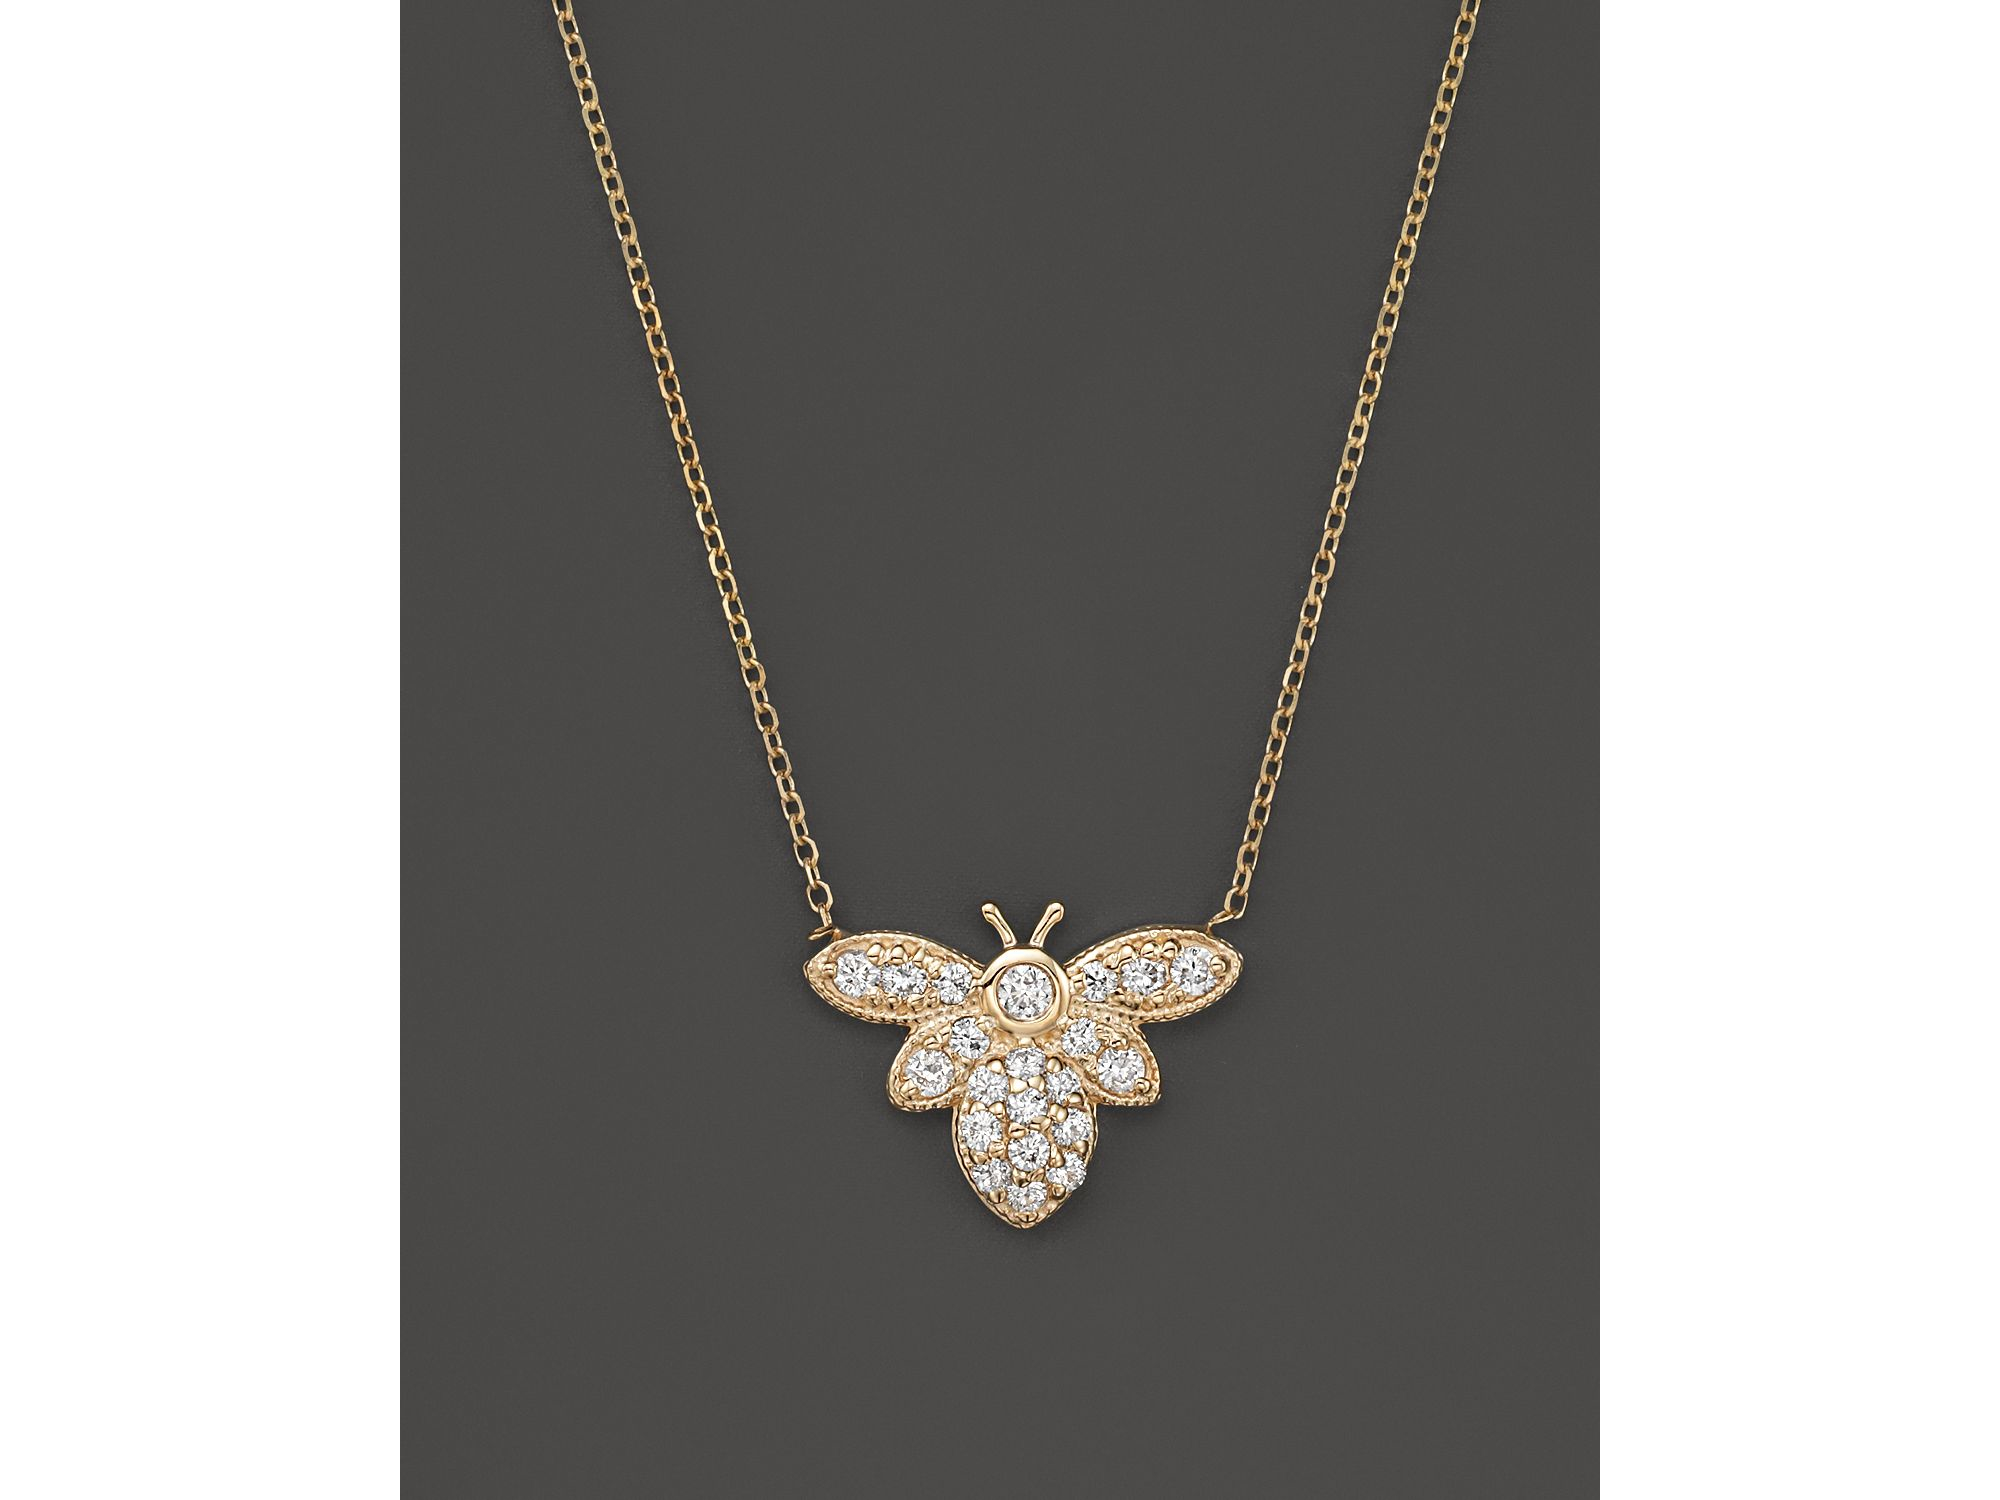 Kc Designs Diamond Bumble Bee Pendant Necklace In 14k